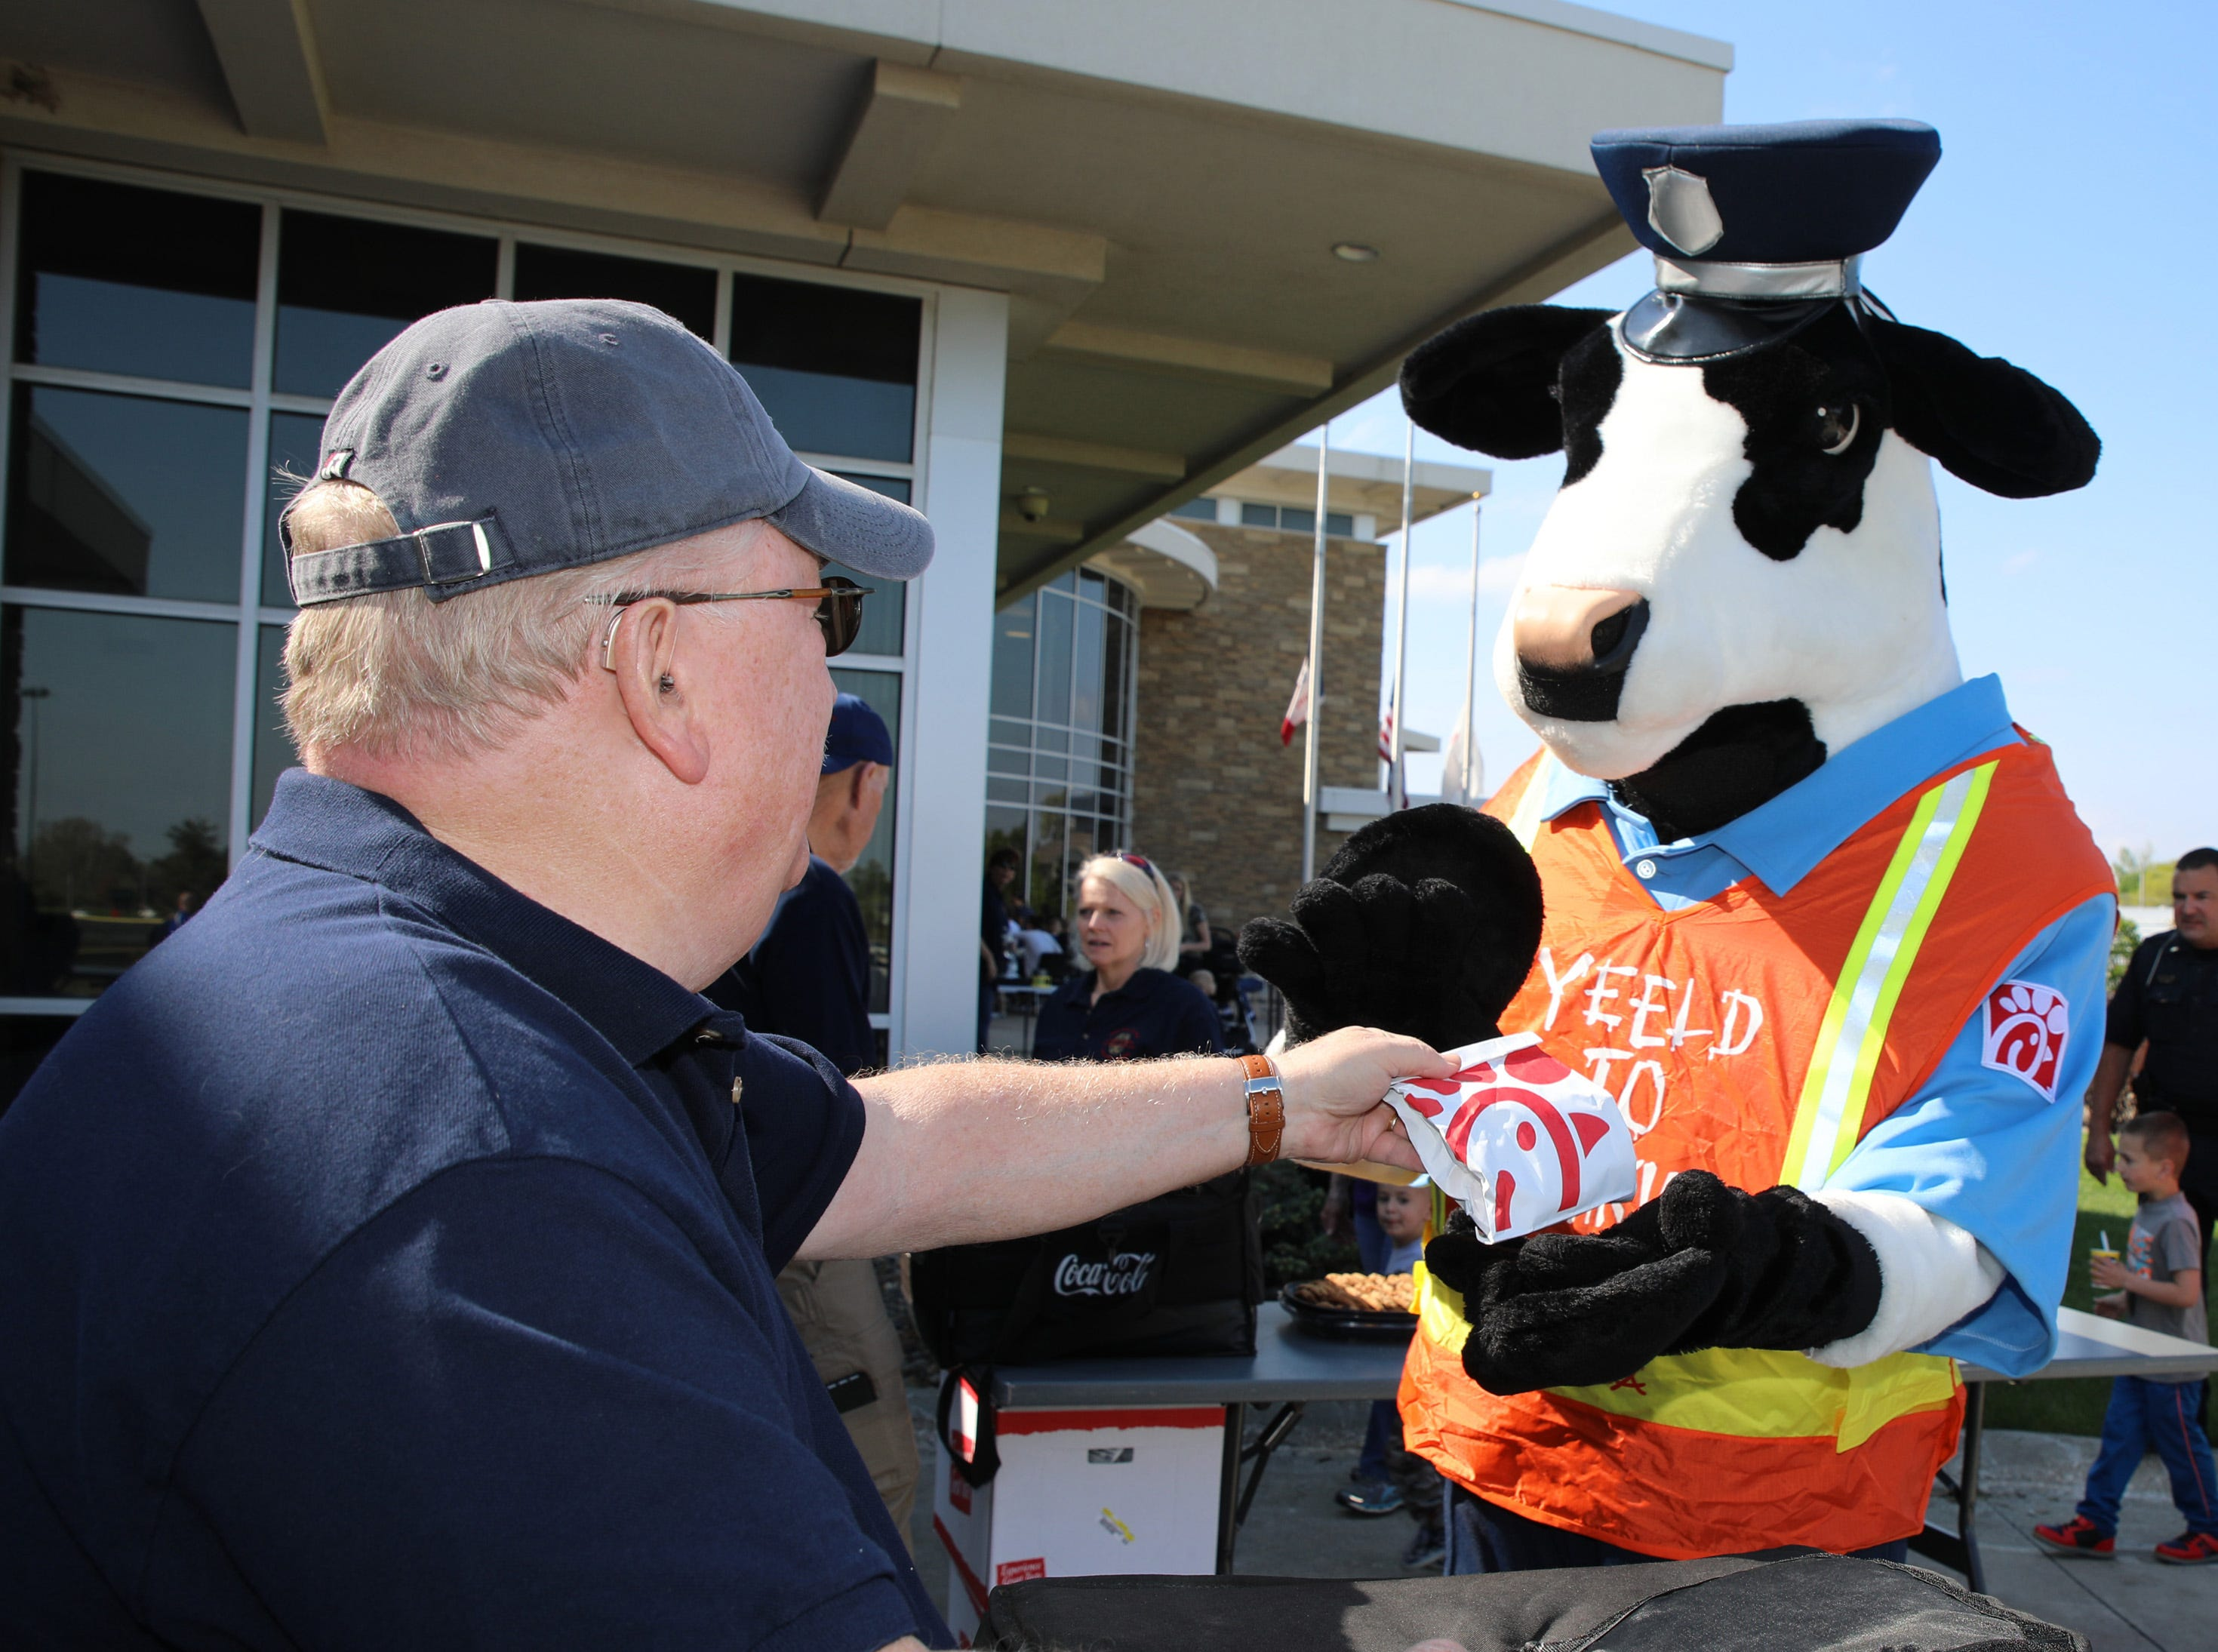 The cow from Chick Fil-A receives a free sandwich from Jerry Swanberg of the Ankeny Citizen's Police Academy during the Ankeny Police Week Community Picnic on Tuesday, May 14, 2019 at the Ankeny Police Headquarters located at 411 SW Ordnance Road. The event featured a tour of the police station, magician Jonathon May, free Chick Fil-A sandwiches for the first 1,000 guests, free Kona Ice, temporary tattoos, and a great opportunity to meet the officers who protect and serve the city of Ankeny.